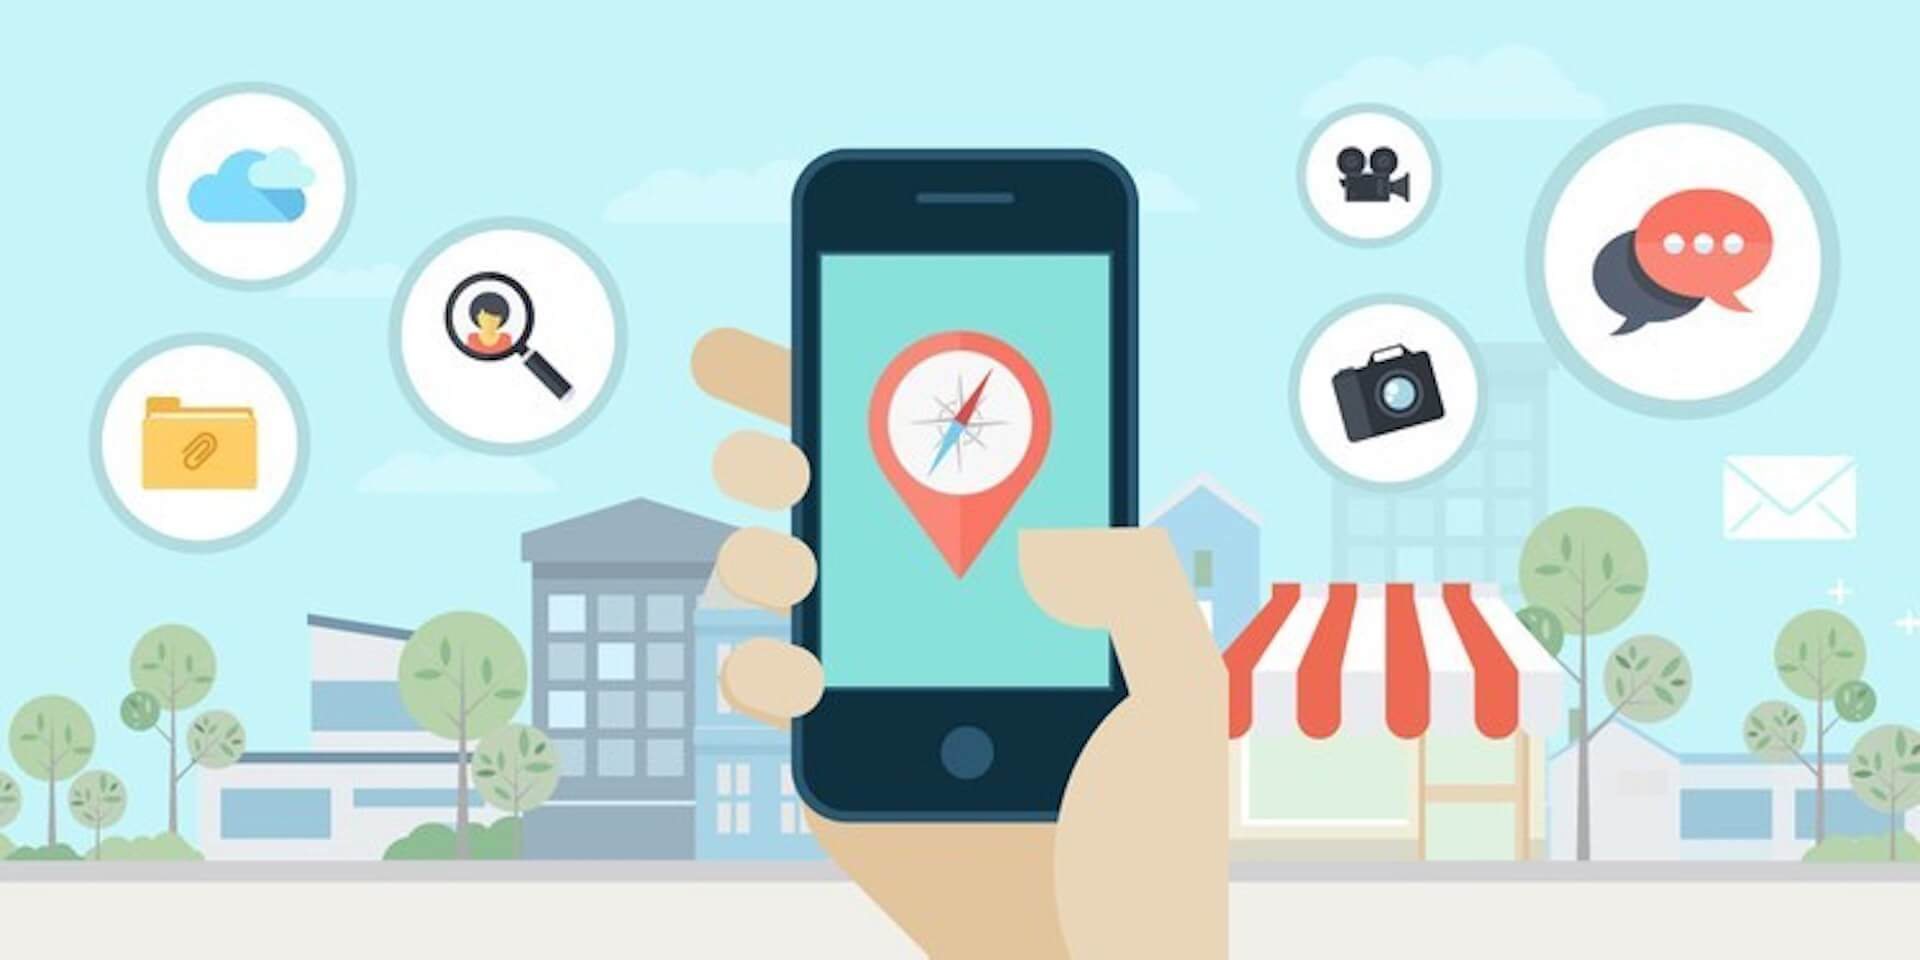 Will Rich Communication Services (RCS) revolutionize business messaging?